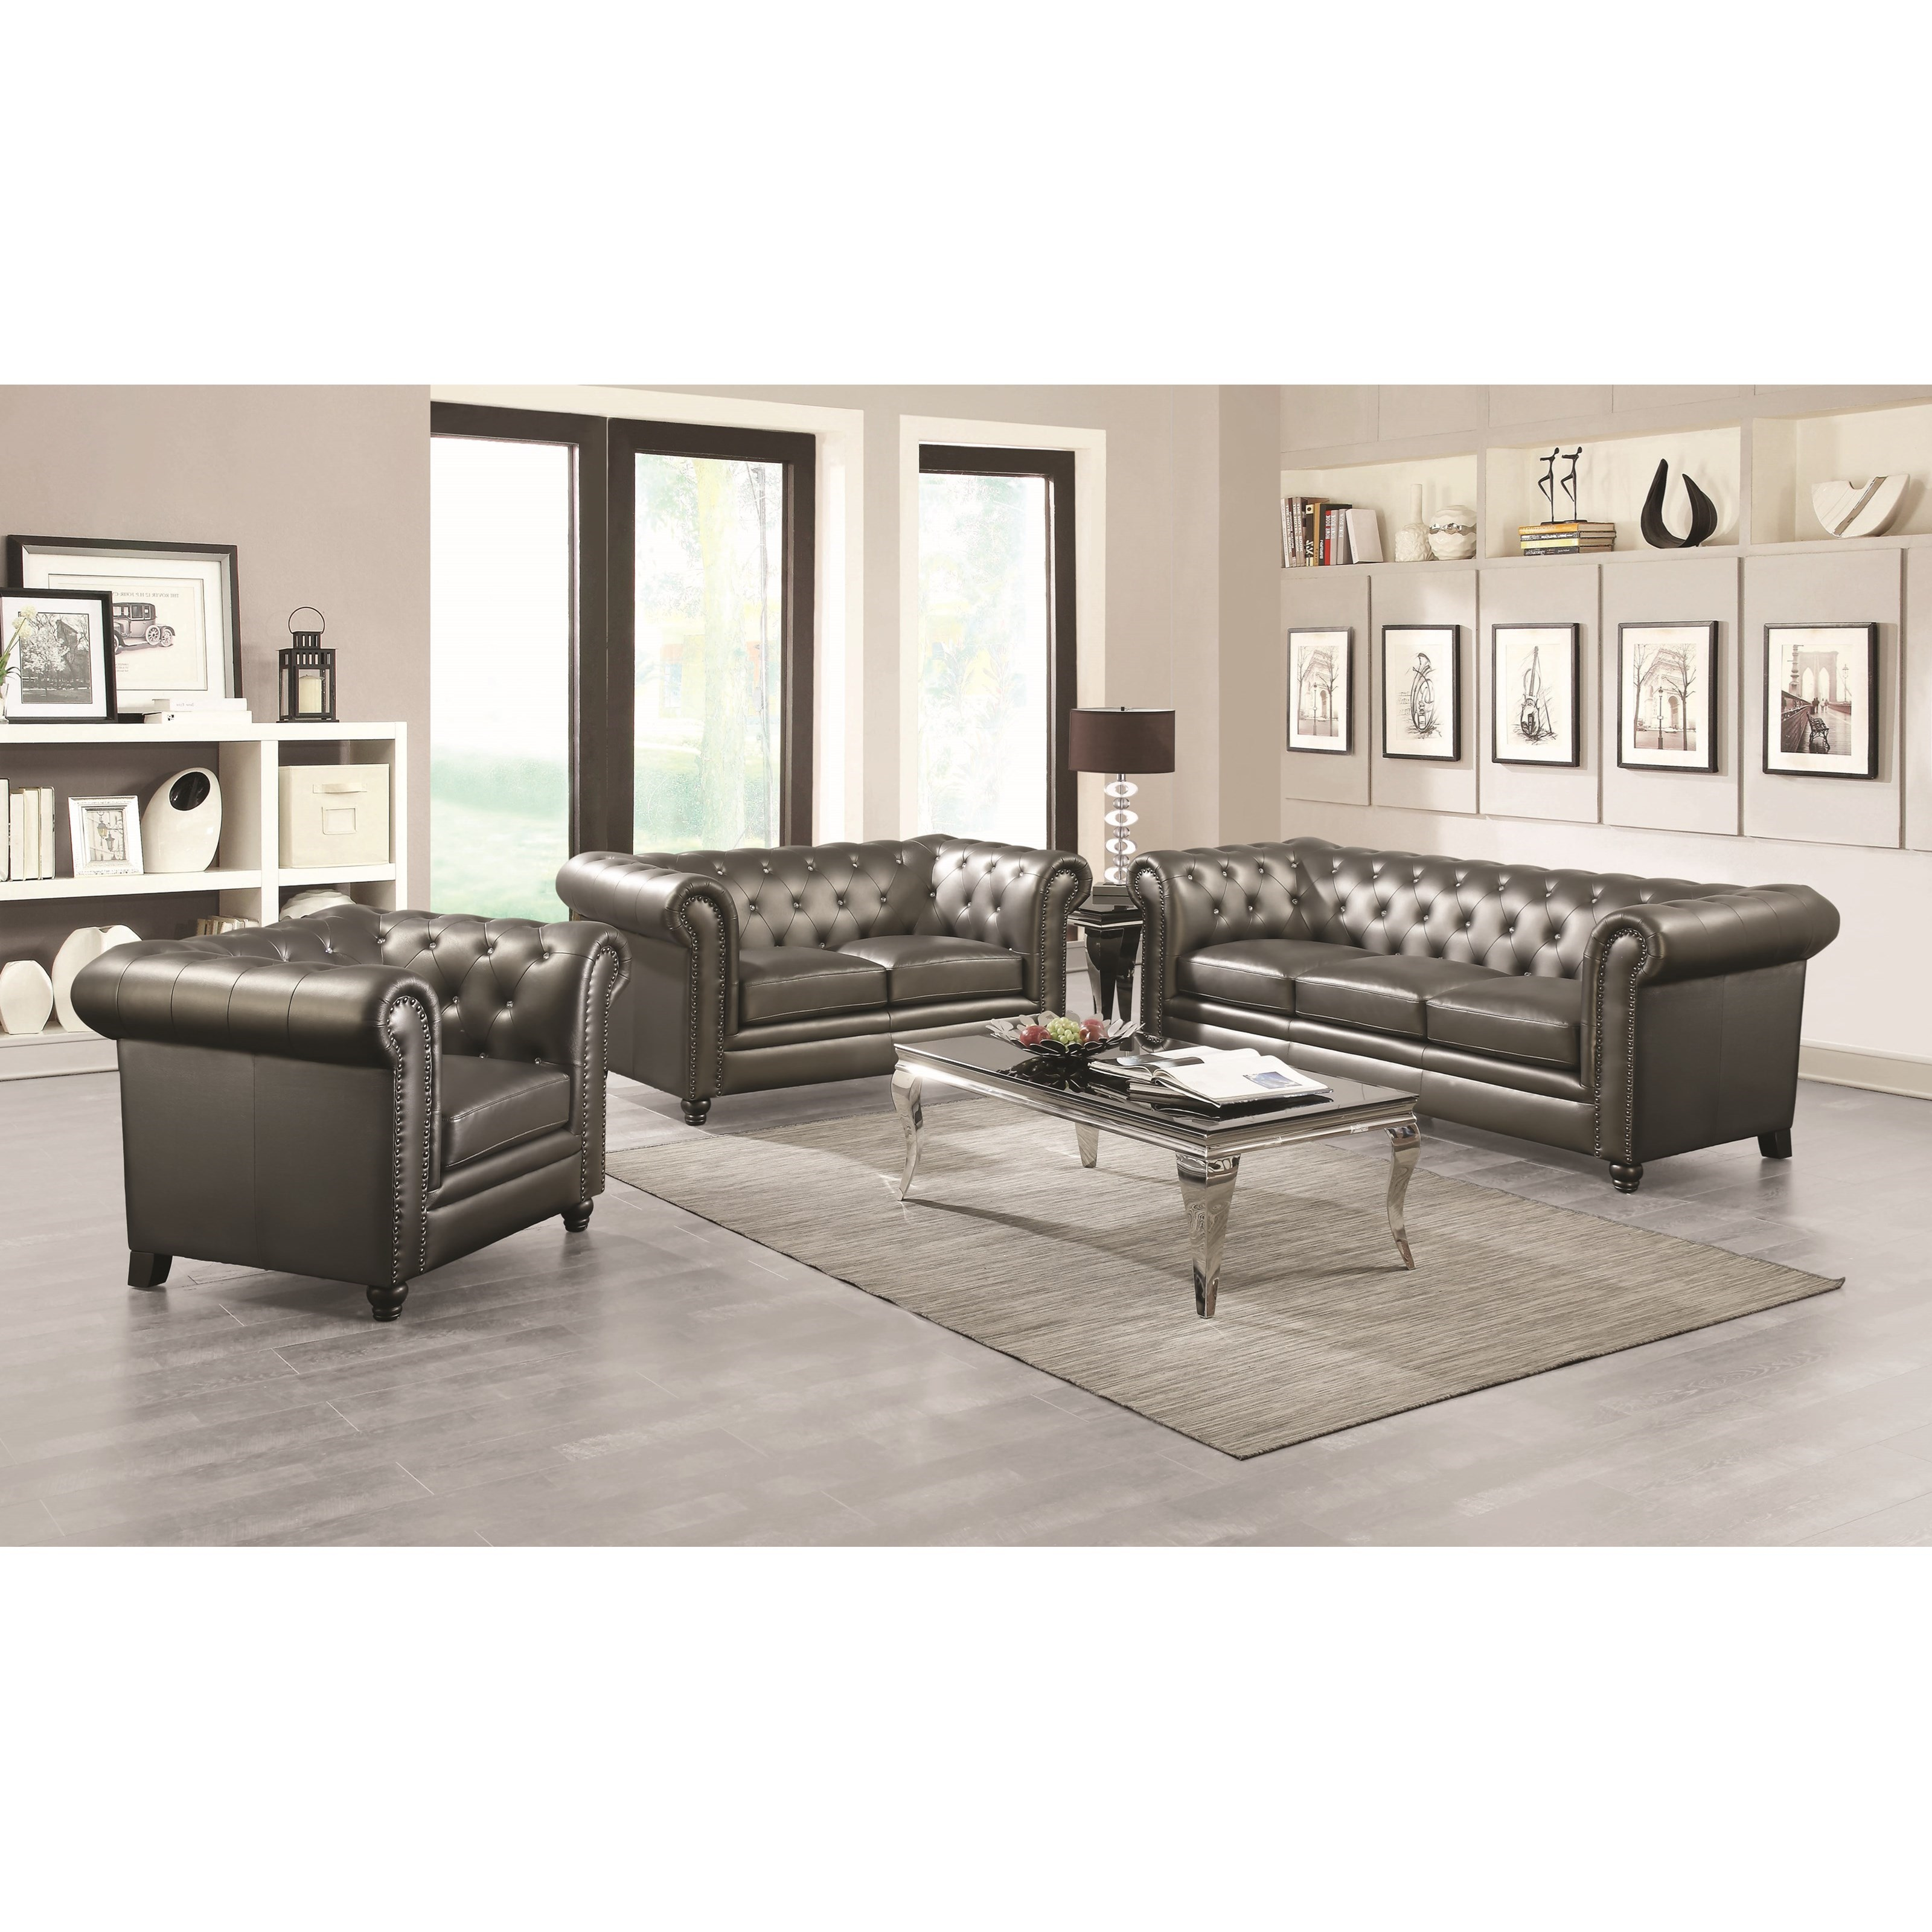 Roy Traditional Living Room 504554 2 Colors Silver